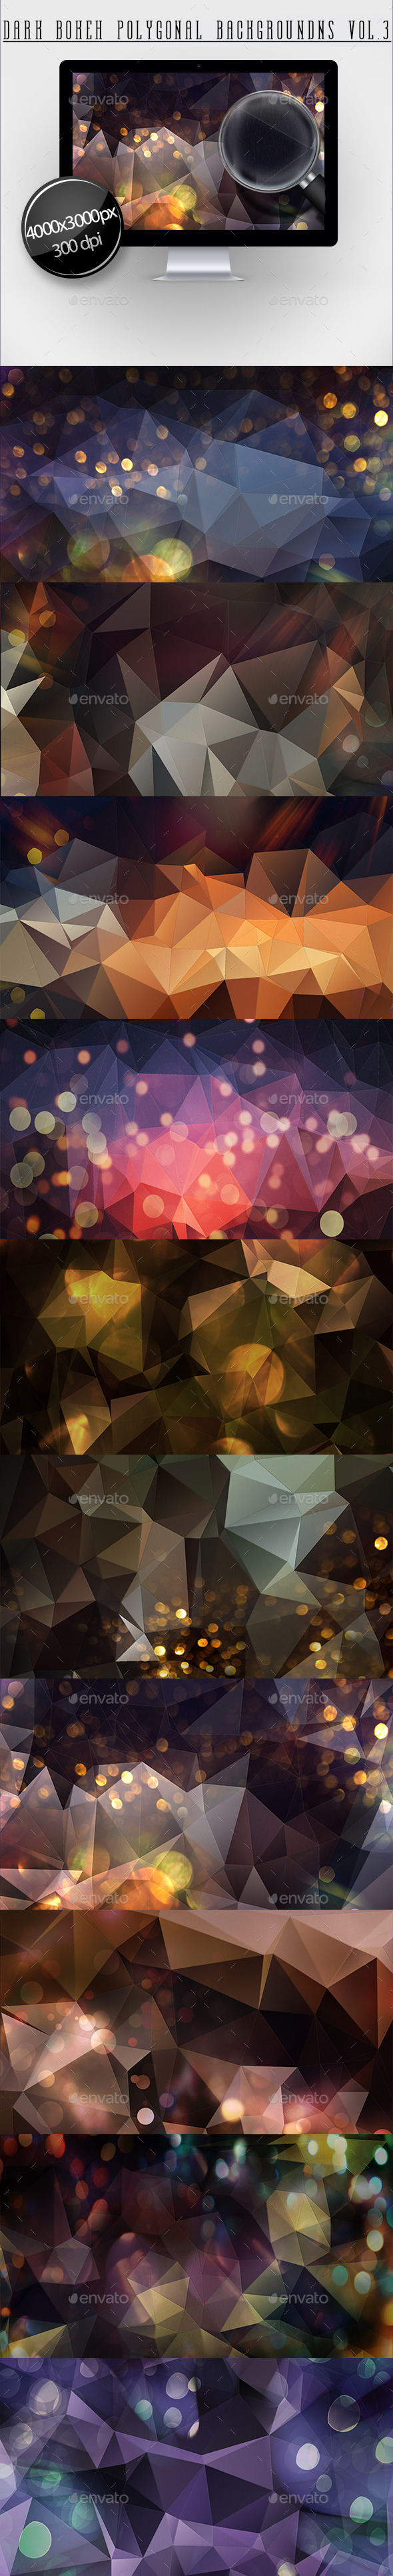 Dark Bokeh Polygonal Backgrounds Vol.3 - Abstract Backgrounds